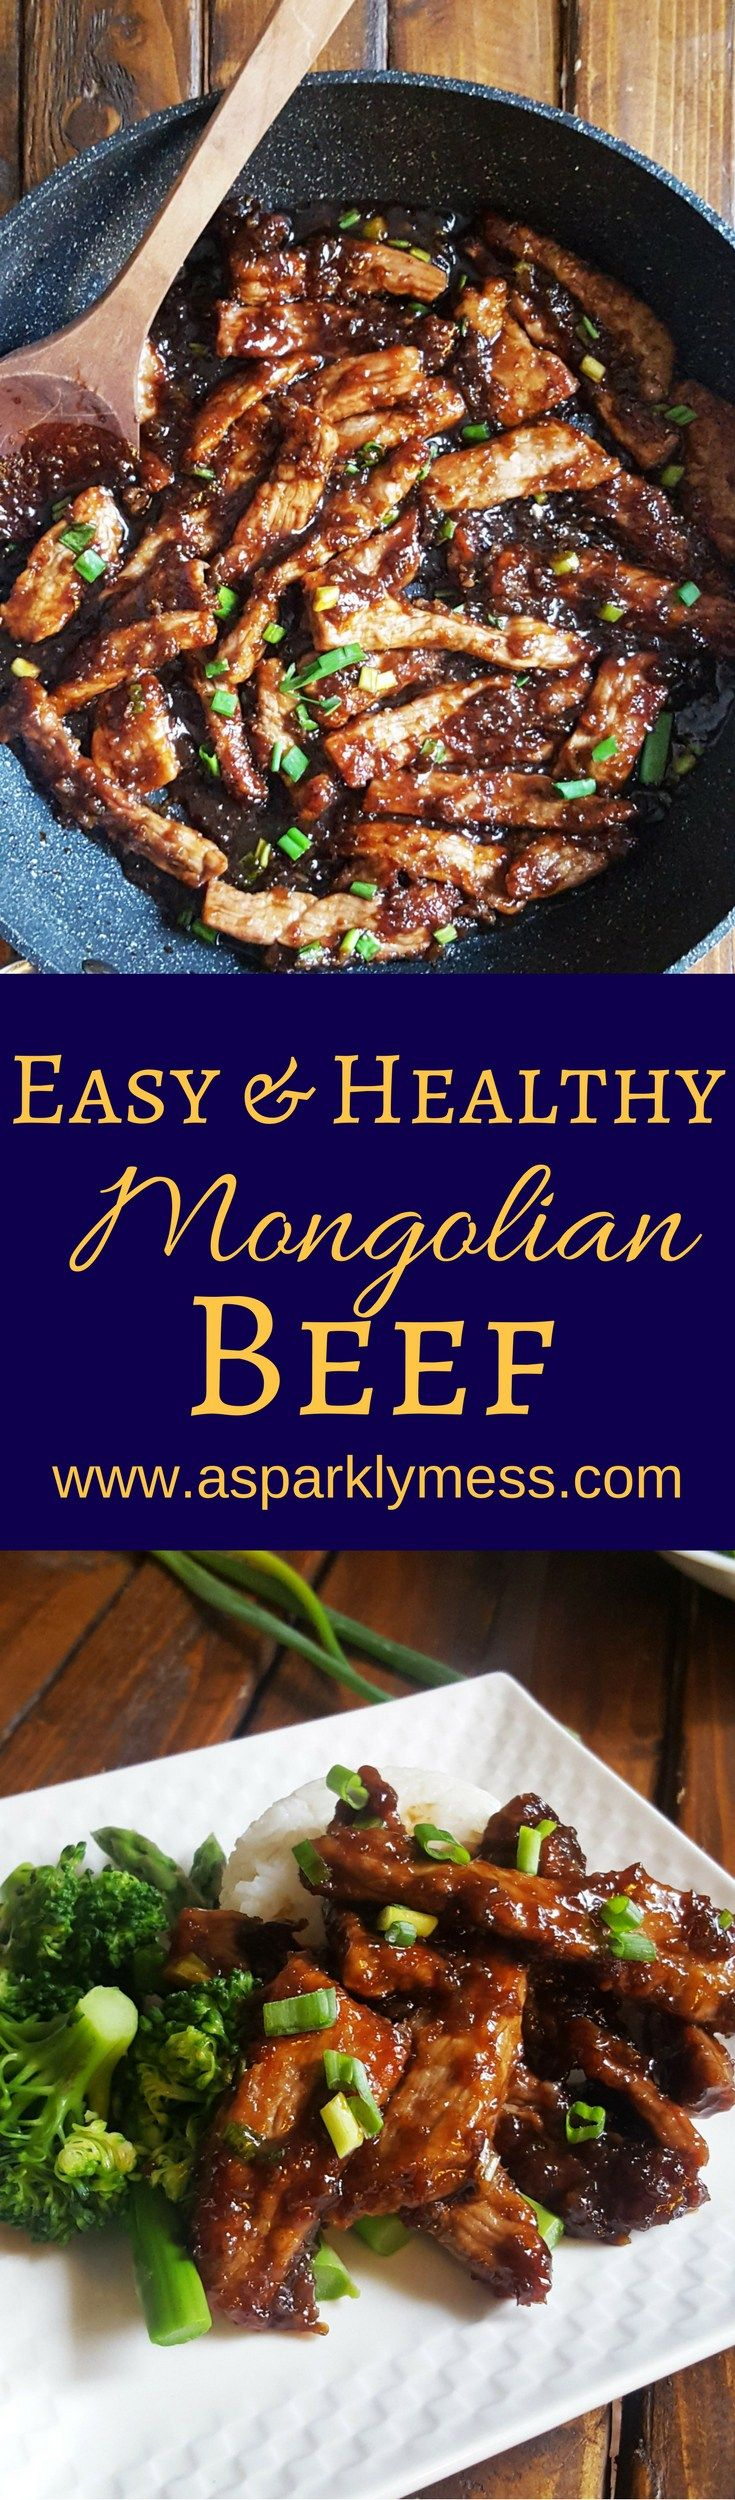 This deliciously Easy Mongolian Beef is made in under 30 minutes.  Tender, savory beef strips coasted in a sticky sweet Asian style sauce.